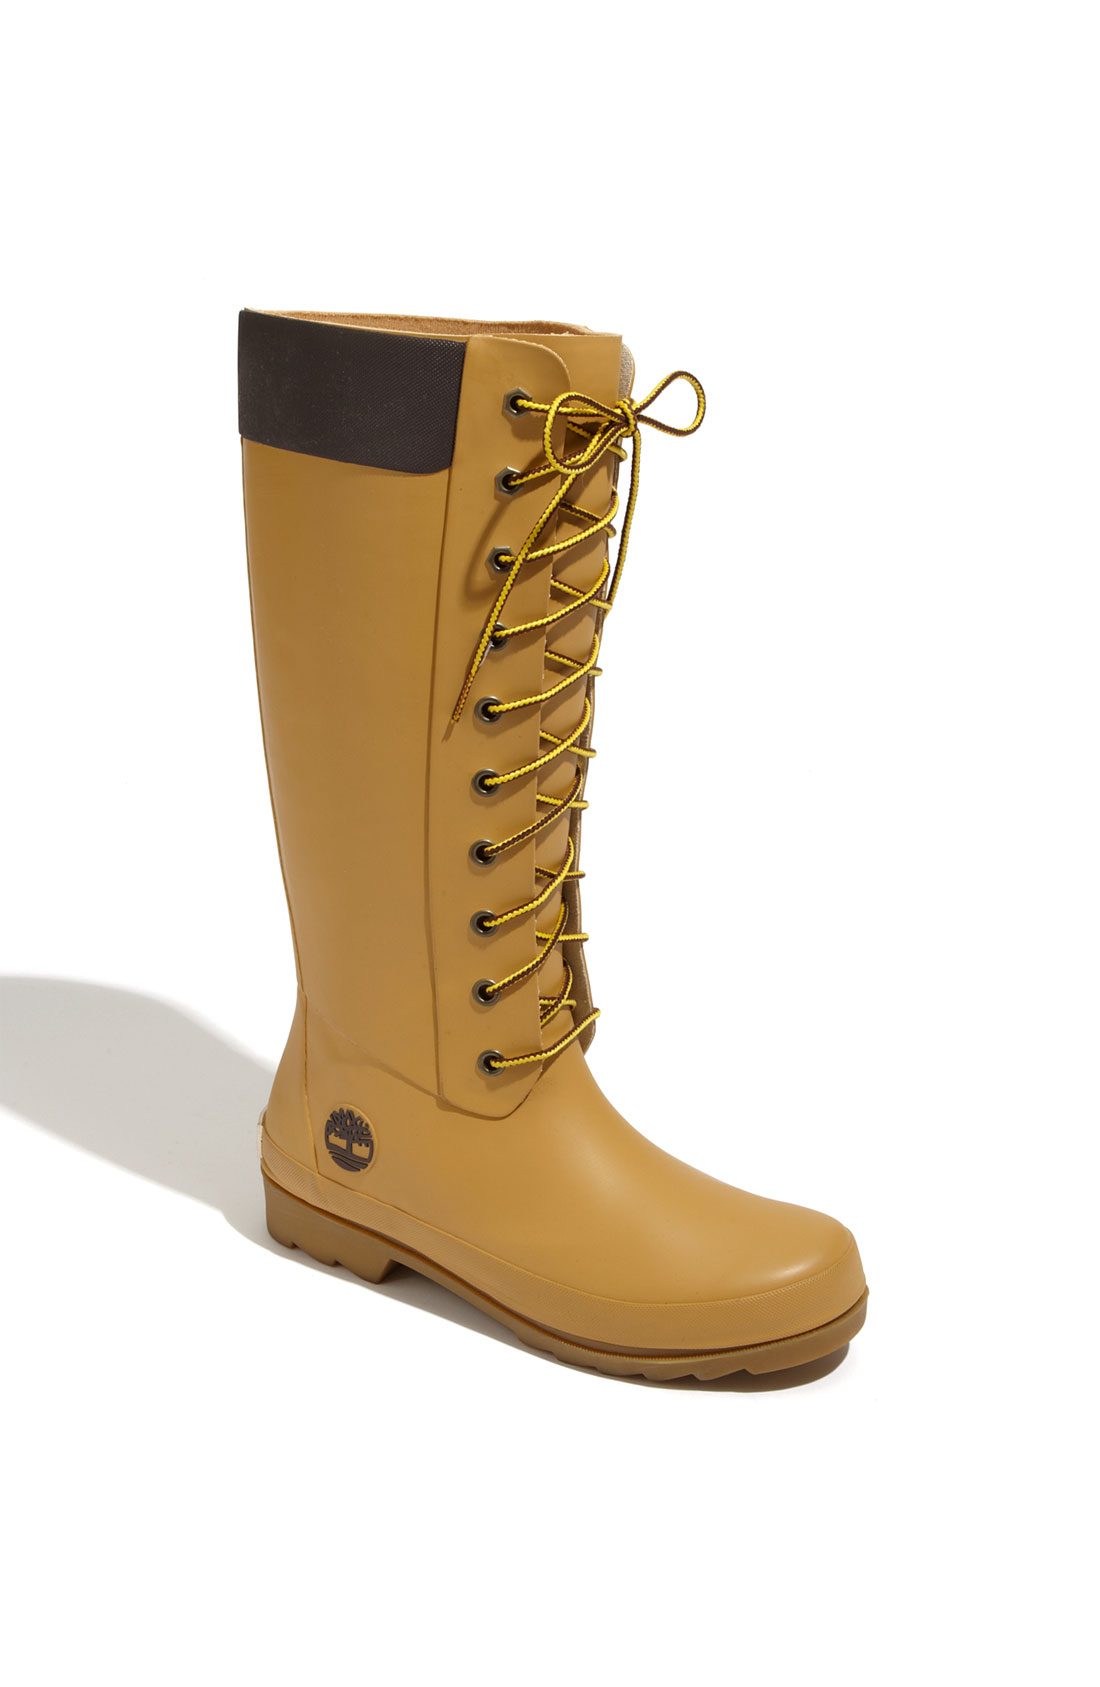 Innovative Cougar Royale Rain  Boots $140, Zappos Waterproof Boots Dont Have To Look Like Theyre Made For Splashing In Puddles These Boots Have A Western Riding Bootinspired Design But You Can Wear A Lo